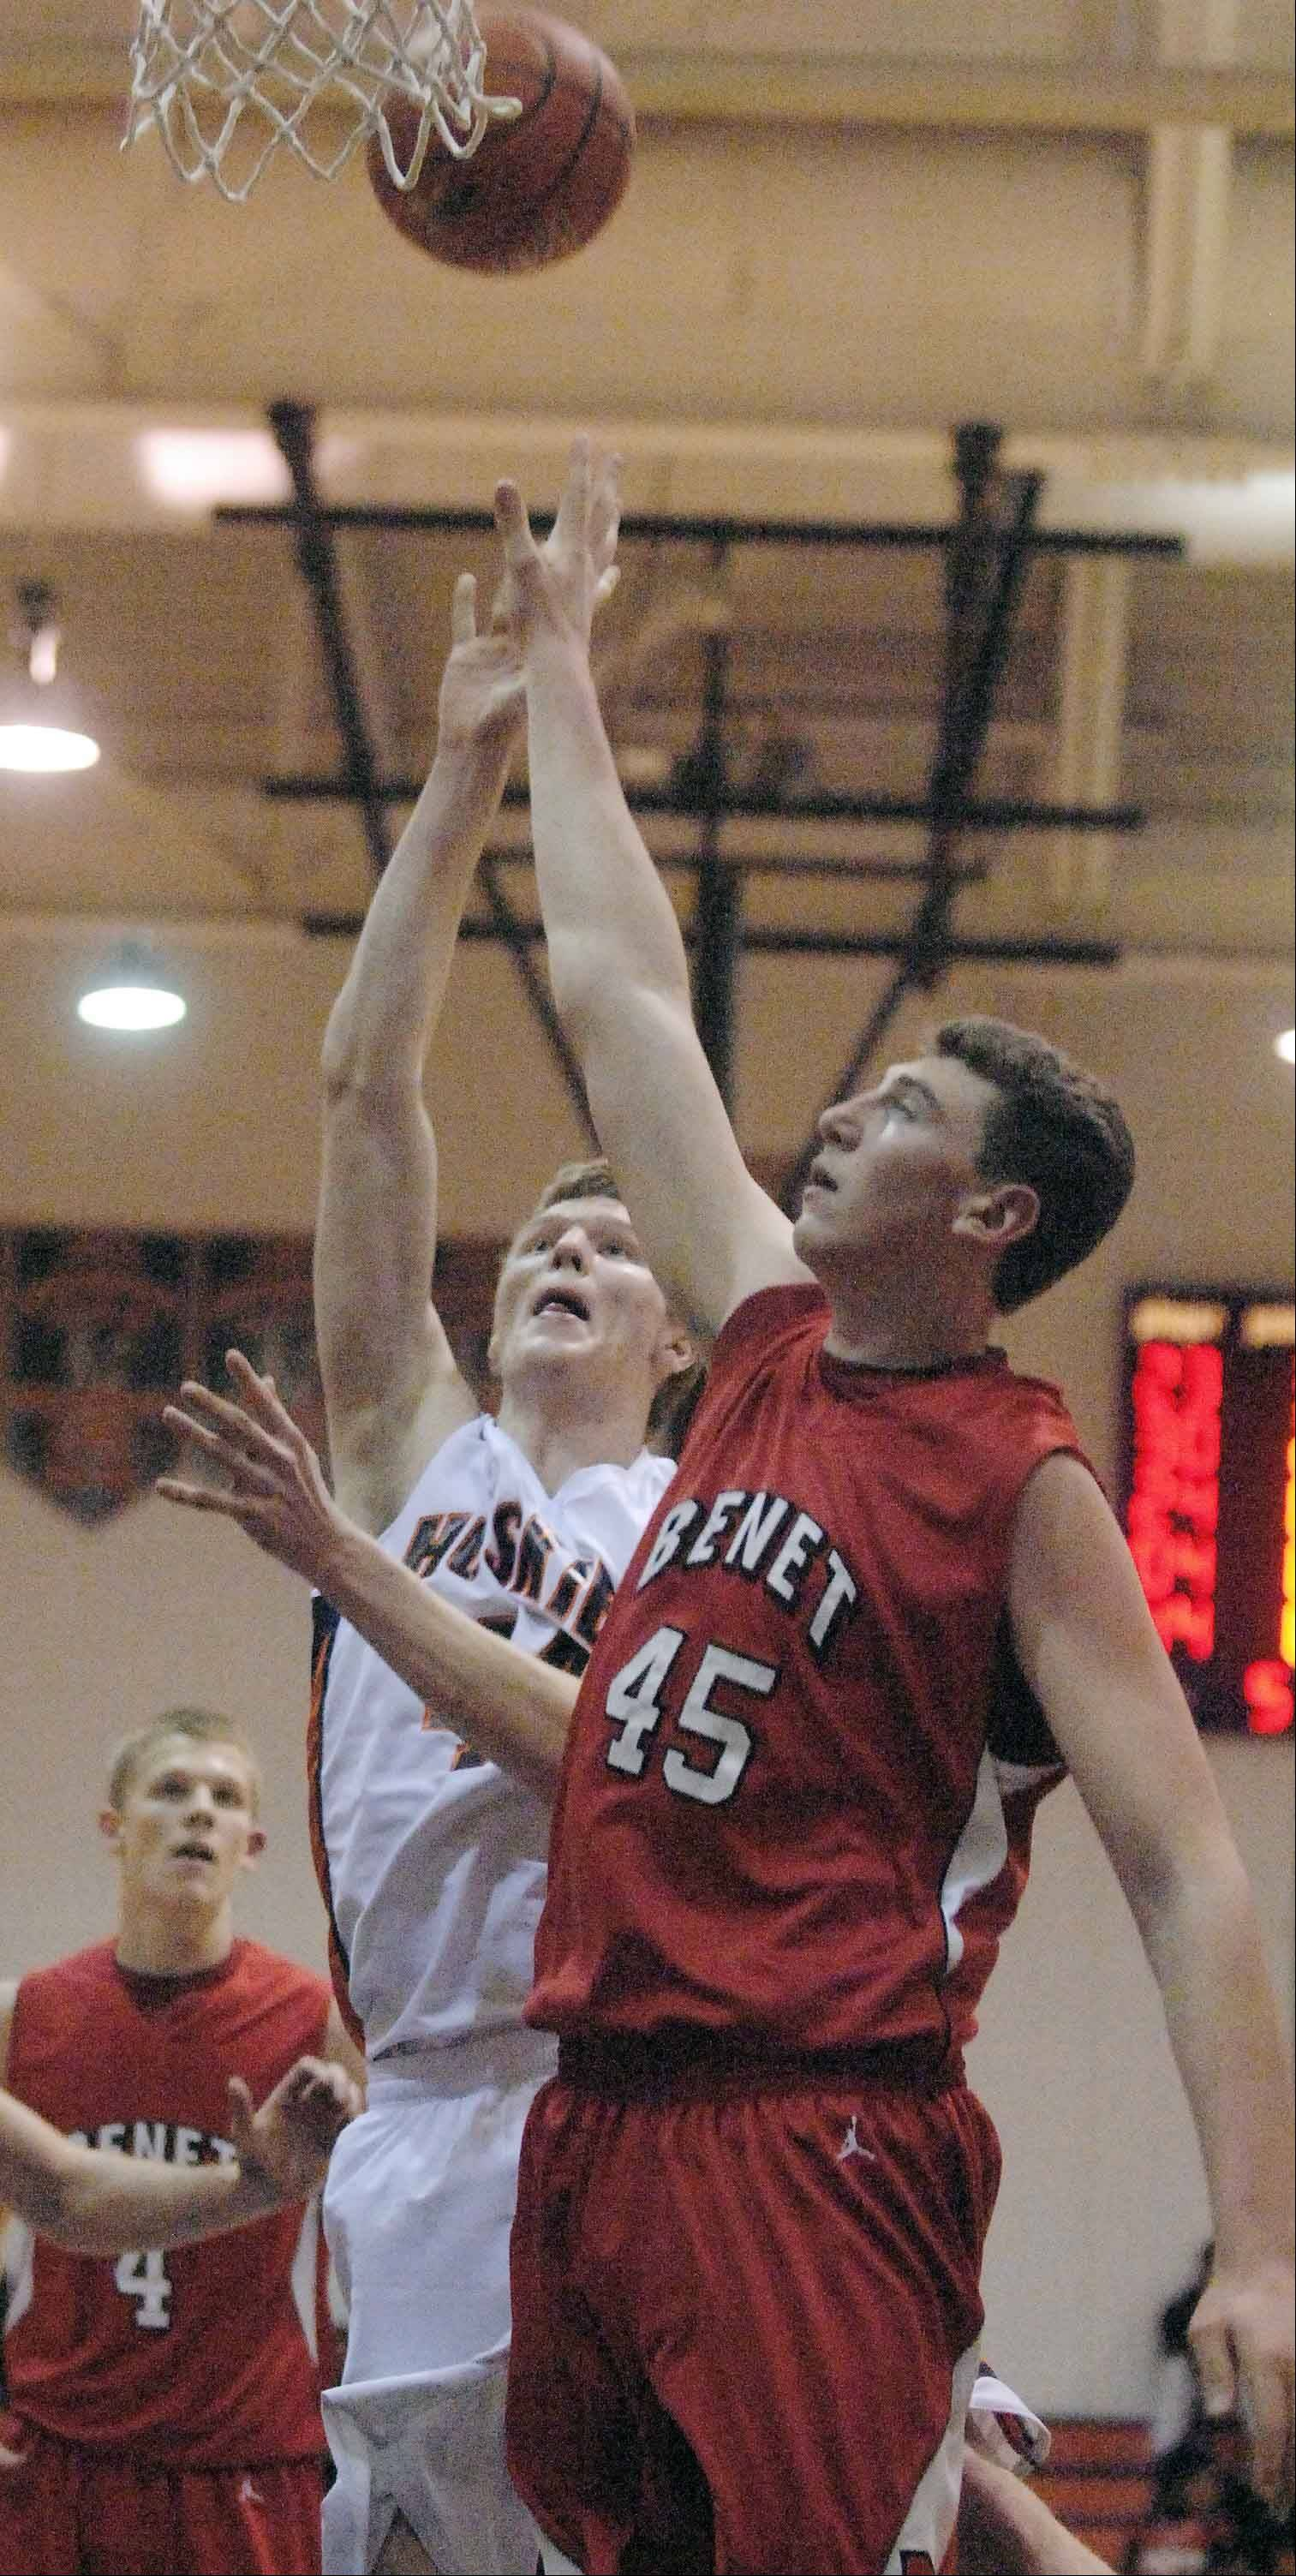 Mike Johnson of Naperville North,left, and Sean O'Mara of Benet go up for a rebound. This took place during the Benet at Naperville North boys basketball game Tuesday.